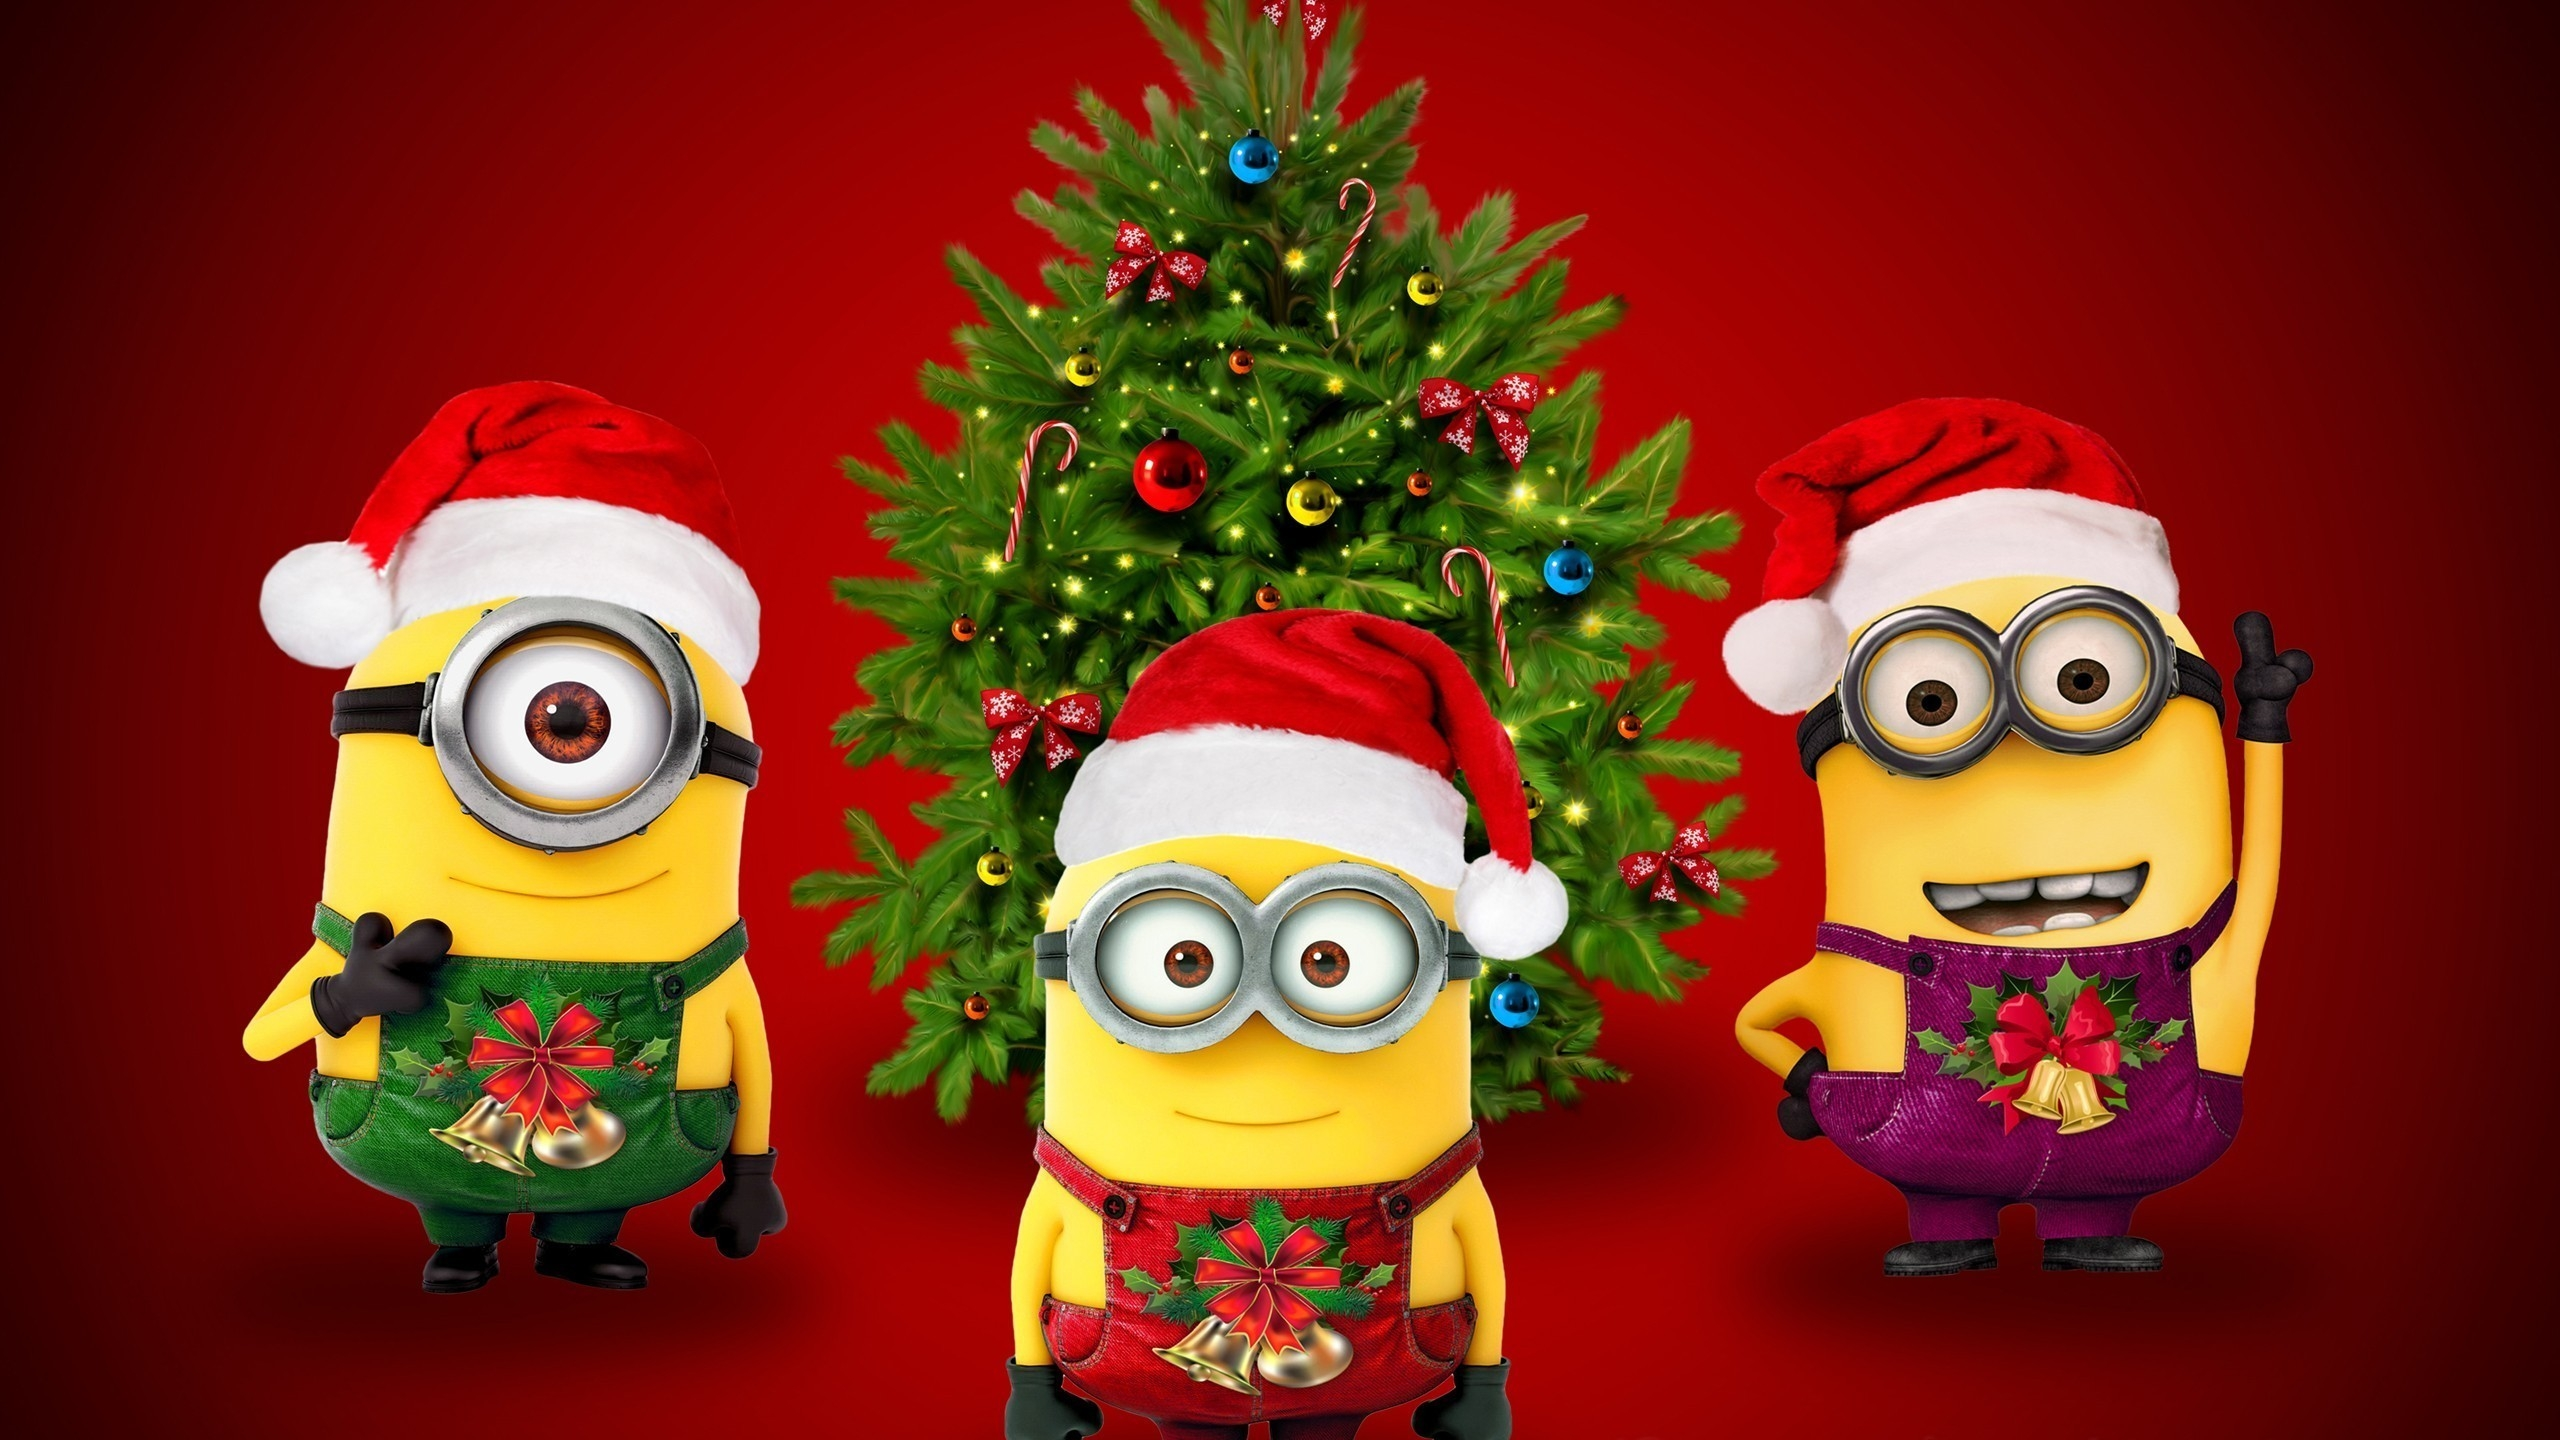 Christmas & Minions for 2560x1440 HDTV resolution